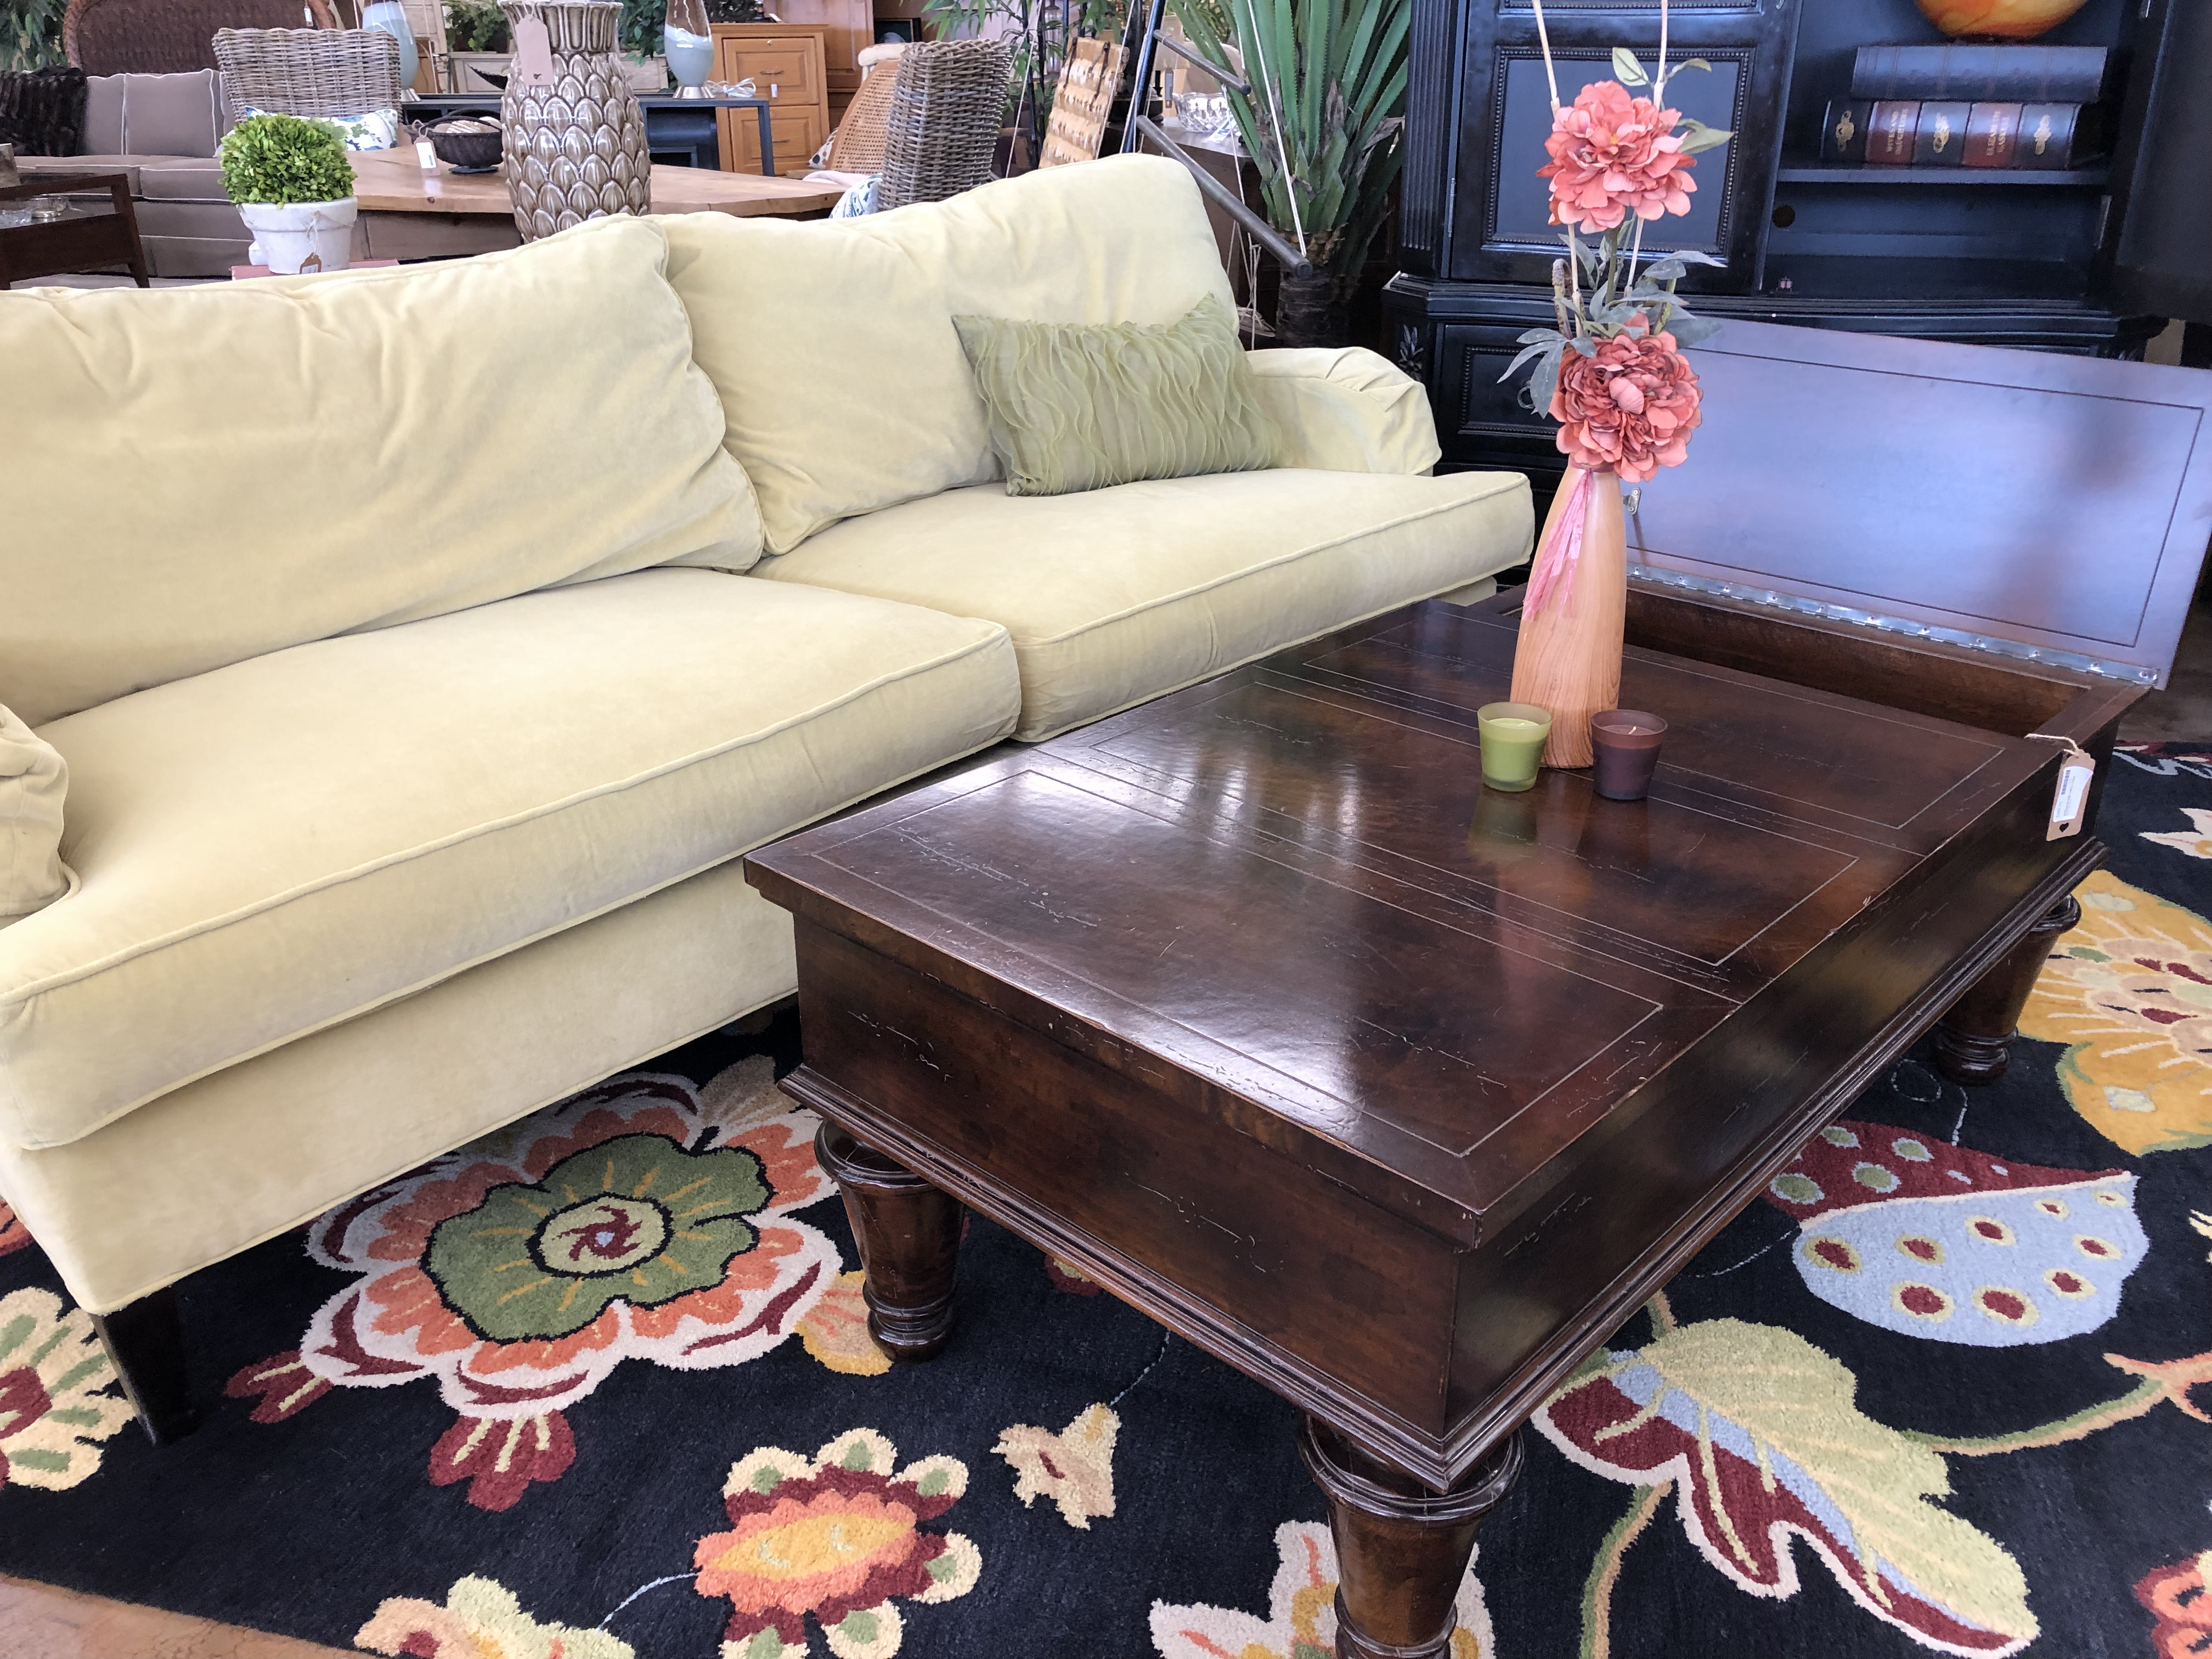 used dark wooden coffee table and light beige couch